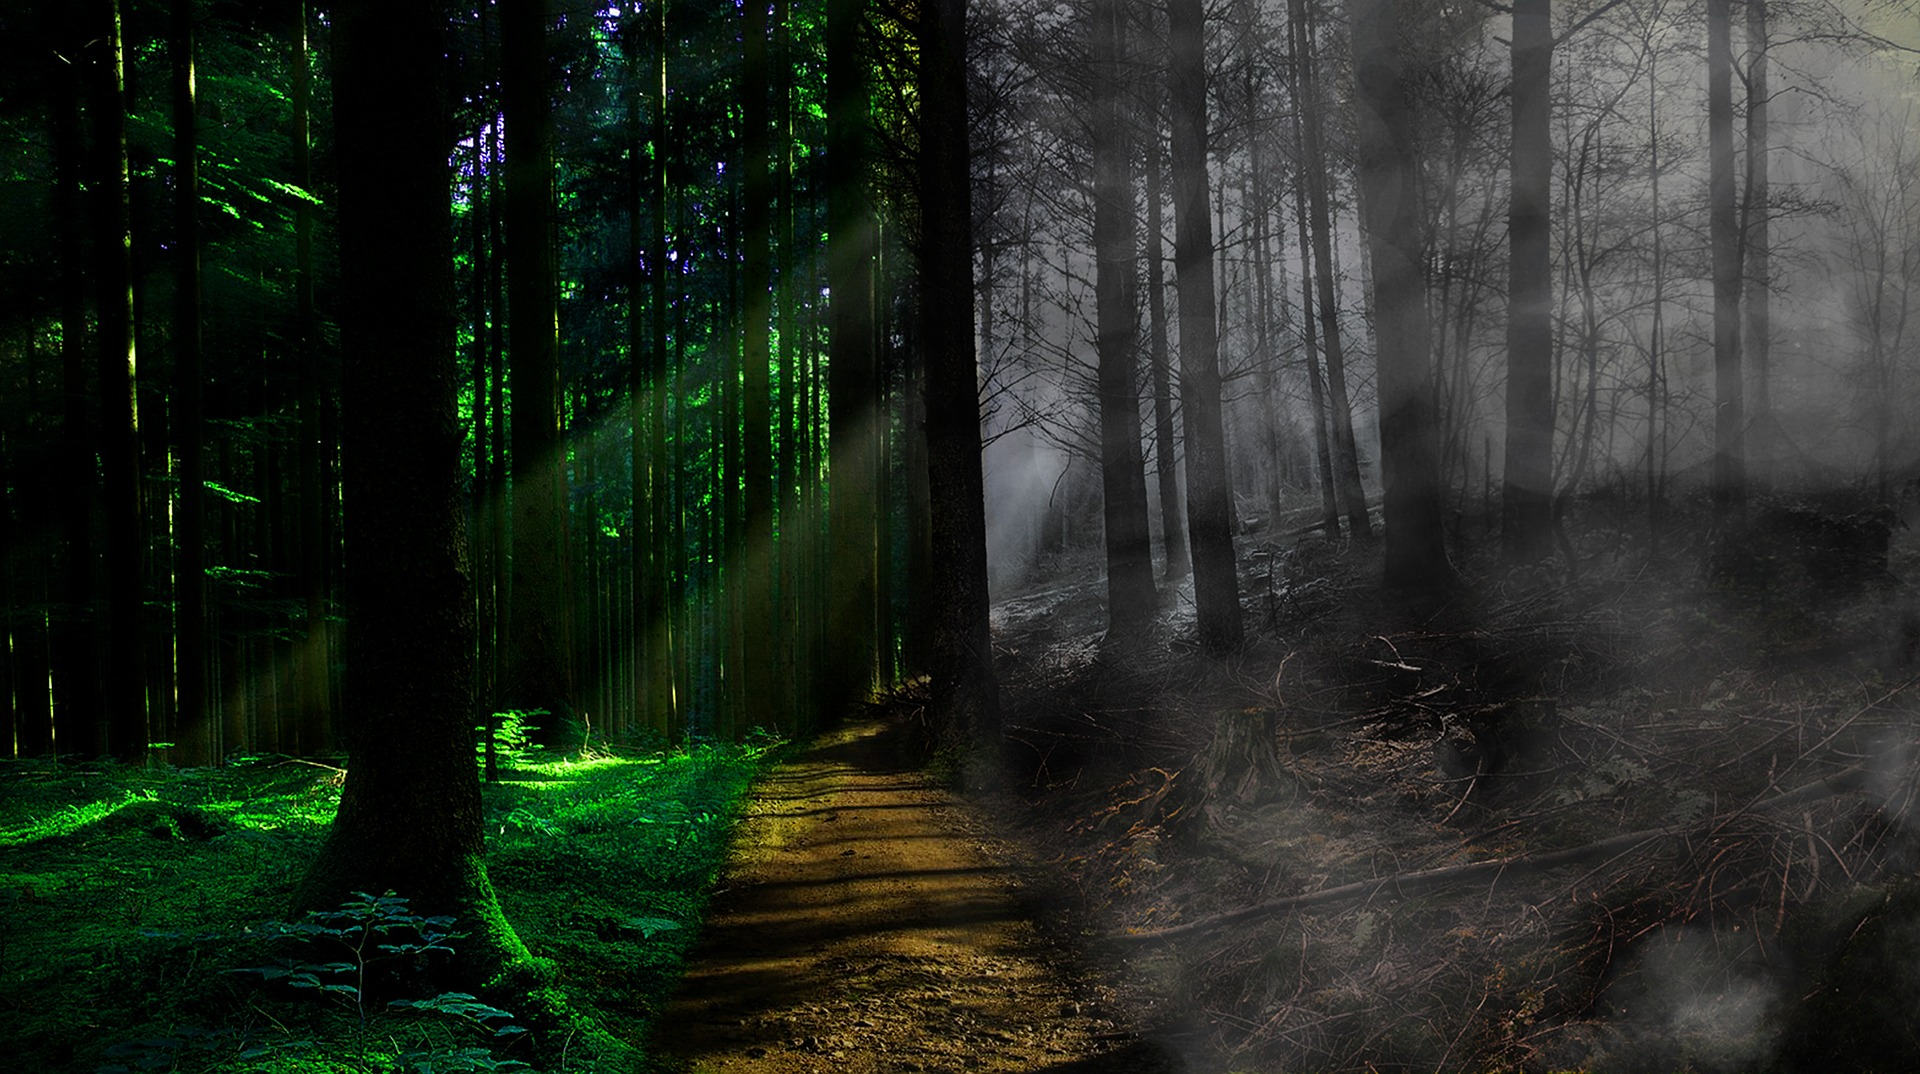 Dealing with fear of death the spiritual way (Life and death forest)